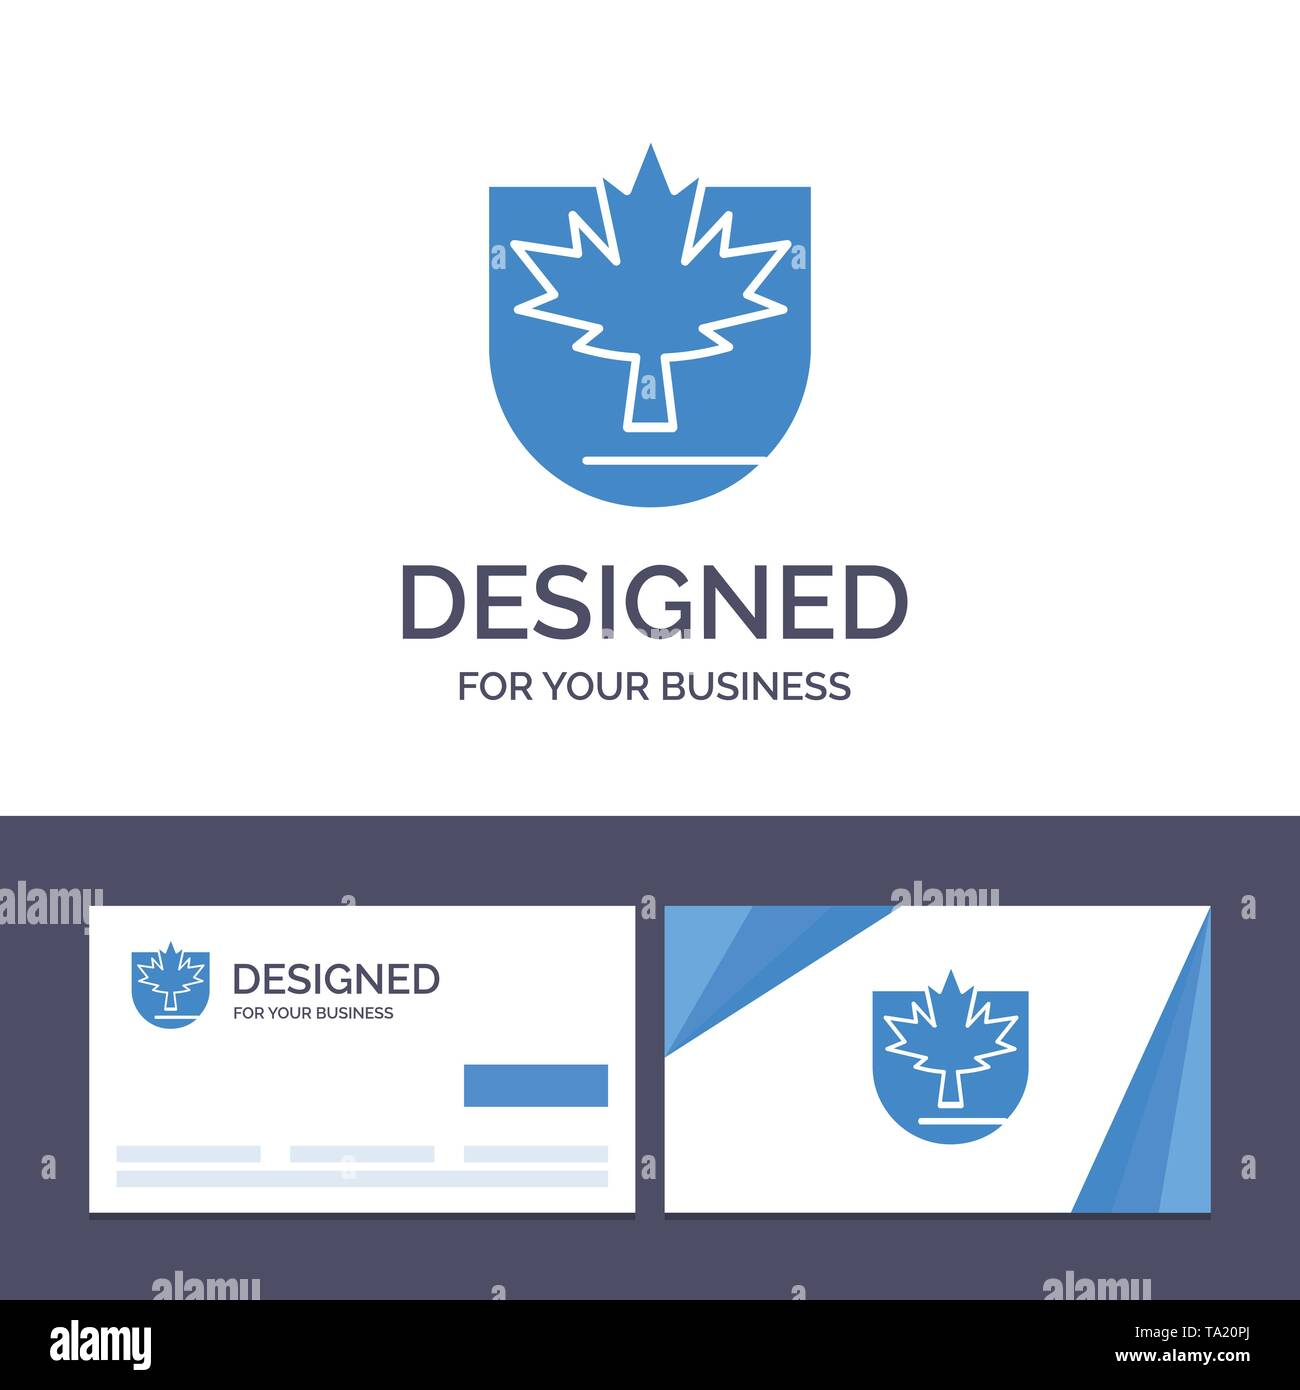 Creative Business Card and Logo template Security, Leaf, Canada, Shield Vector Illustration - Stock Image